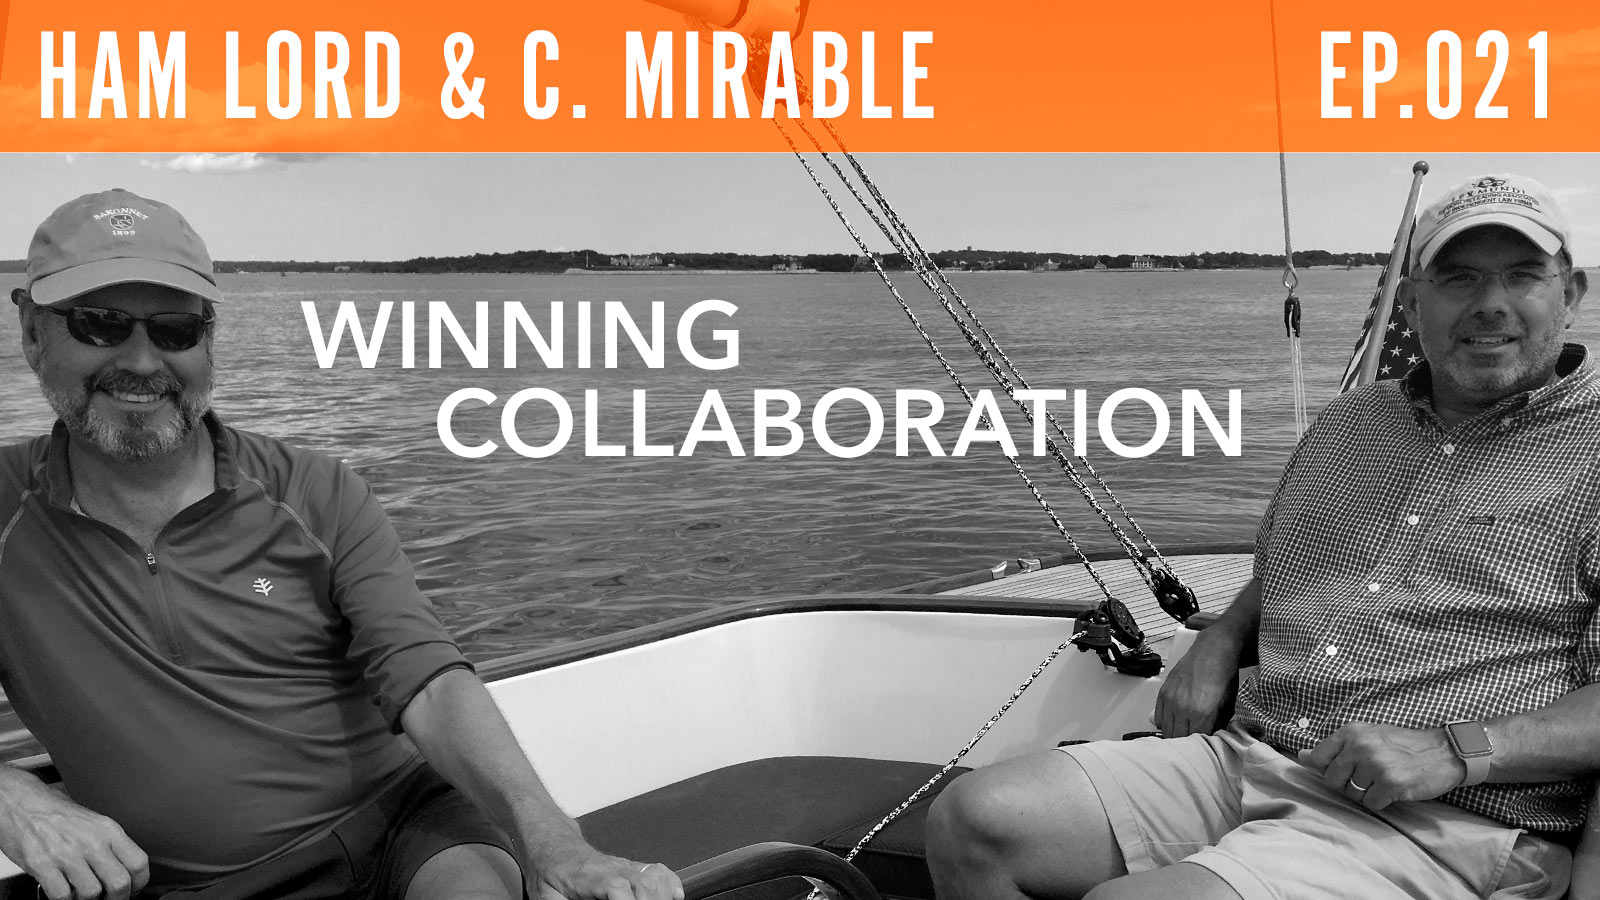 Ham Lord & Christopher Mirable  Winning Collaboration